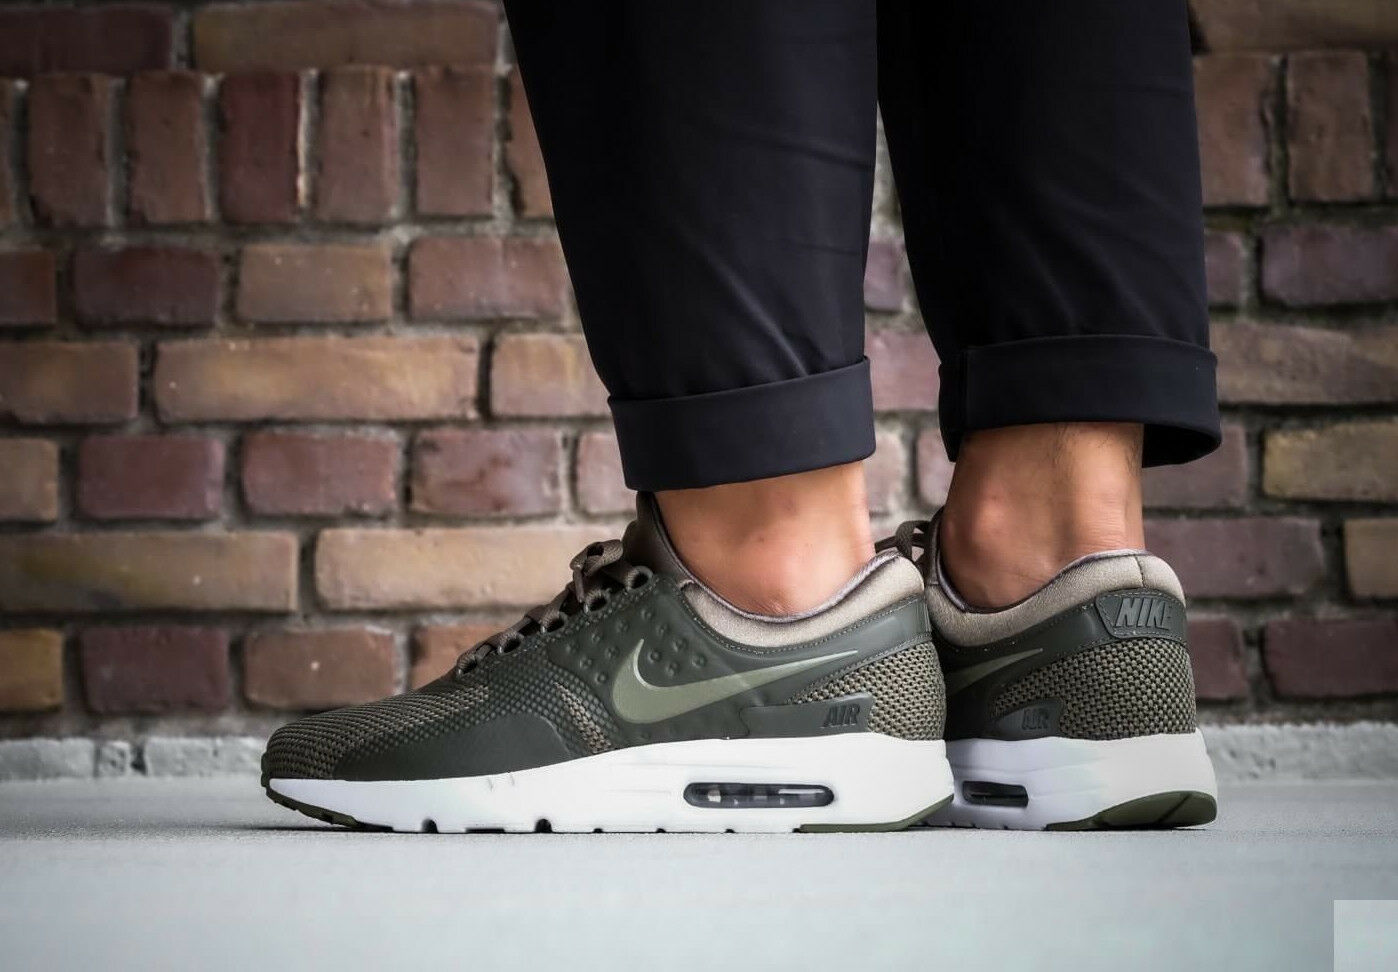 NIKE AIR MAX ZERO Casual ESSENTIAL Running Trainers Gym Casual ZERO -7.5 (EUR 42) Olive 57a470